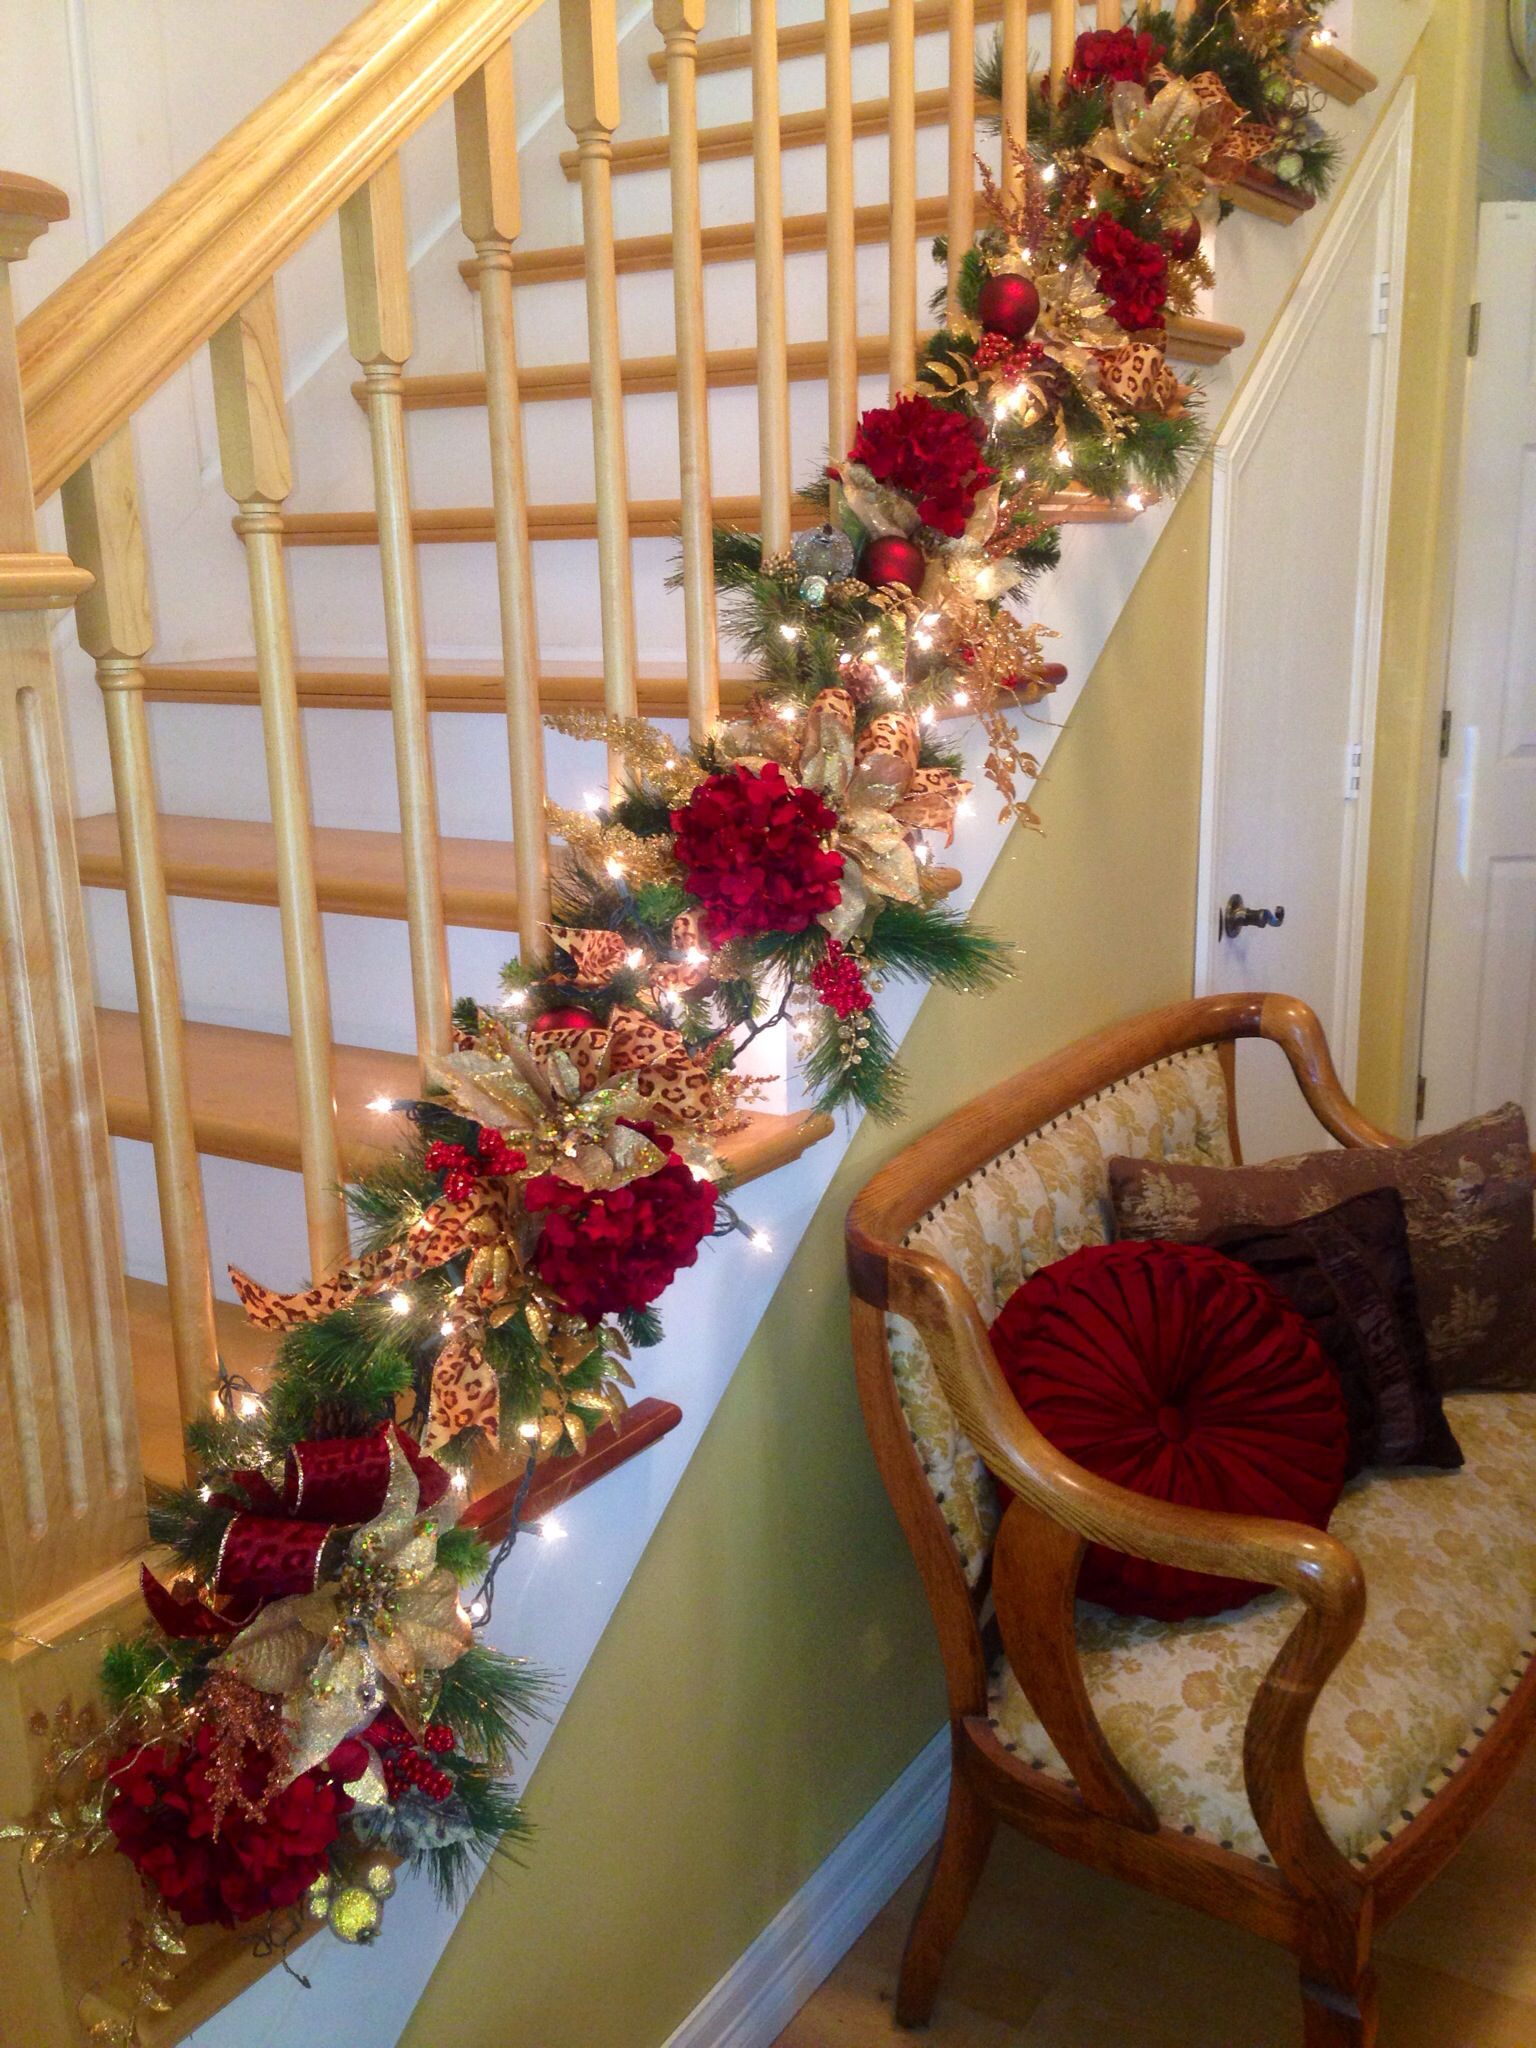 christmas staircase garland decoration - Banister Christmas Garland Decor